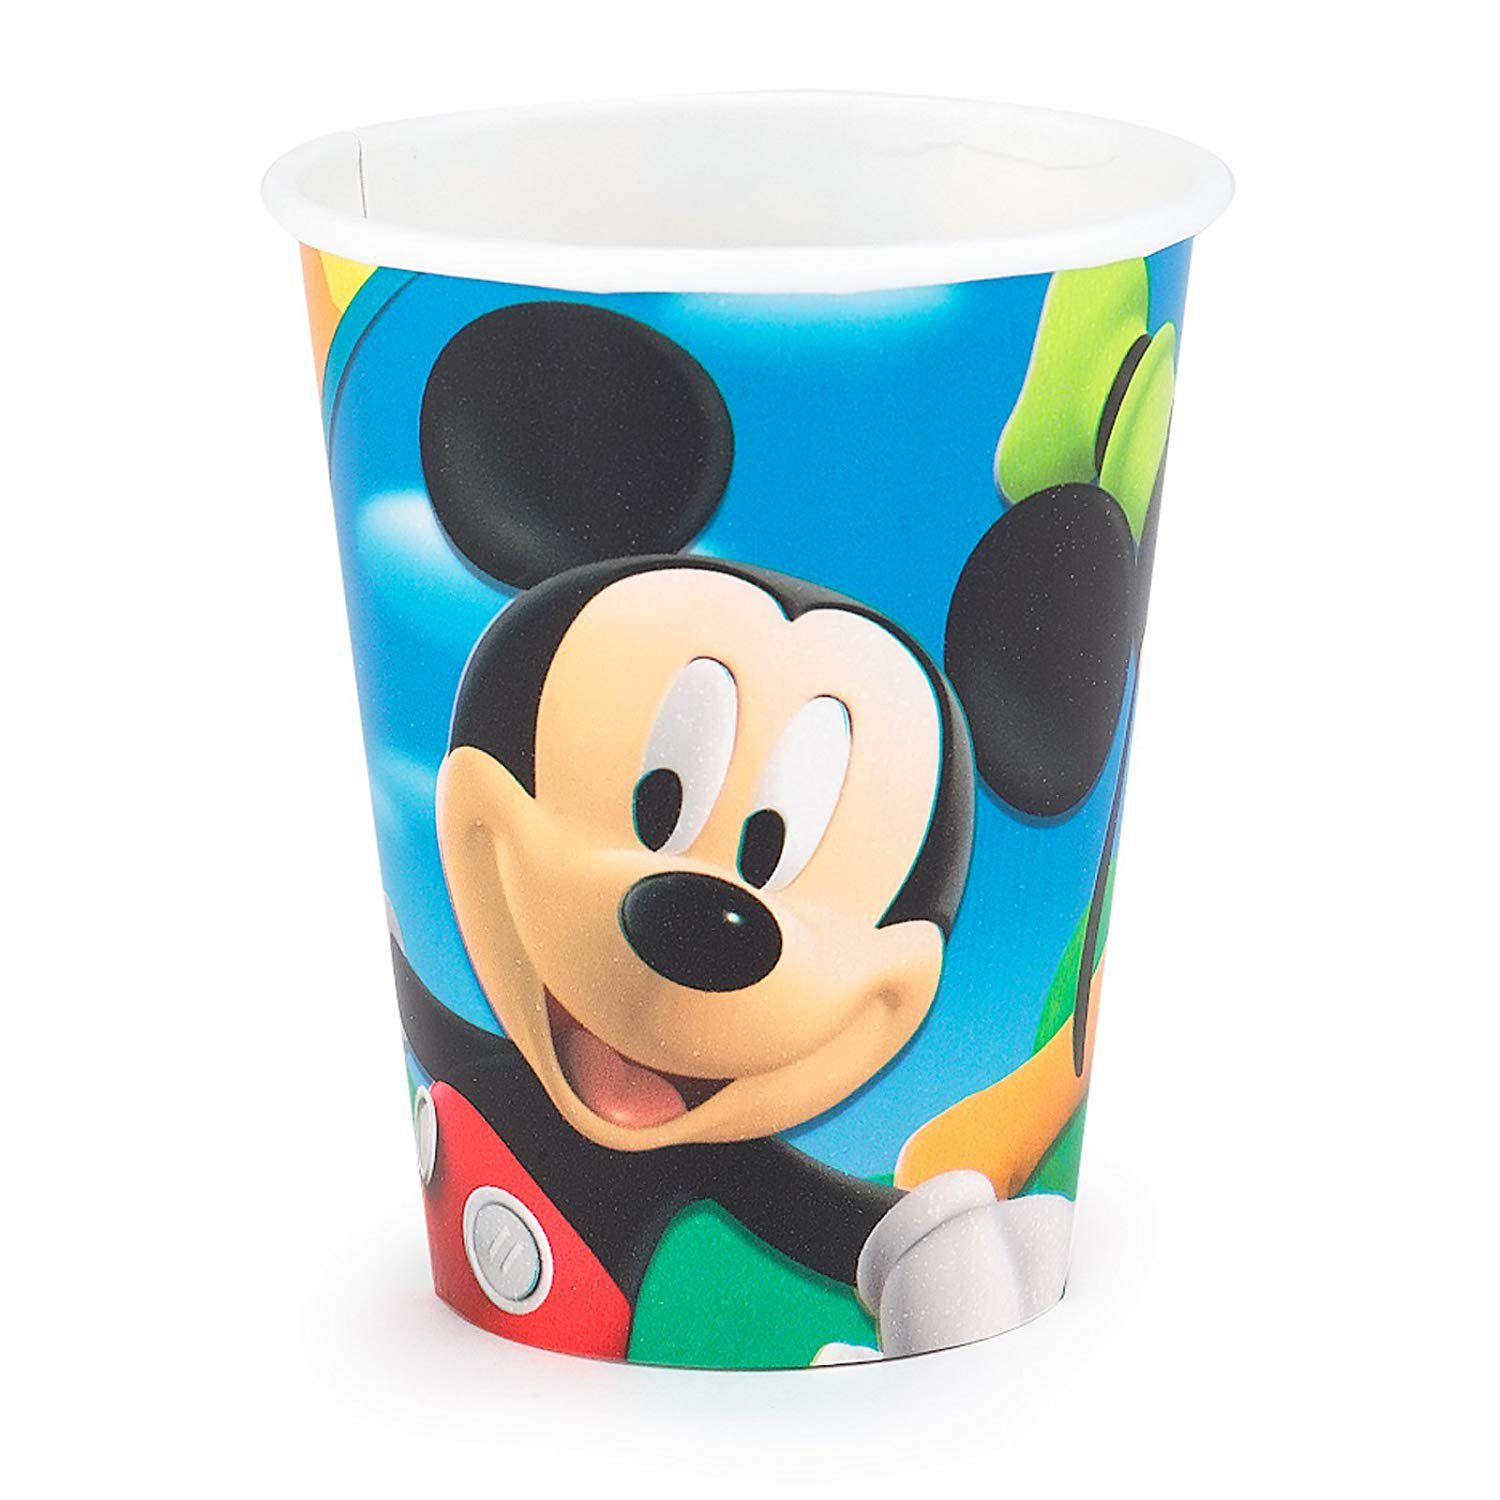 Mickey's Clubhouse 9 oz. Paper Cups (8 count) [Toy] [Toy]